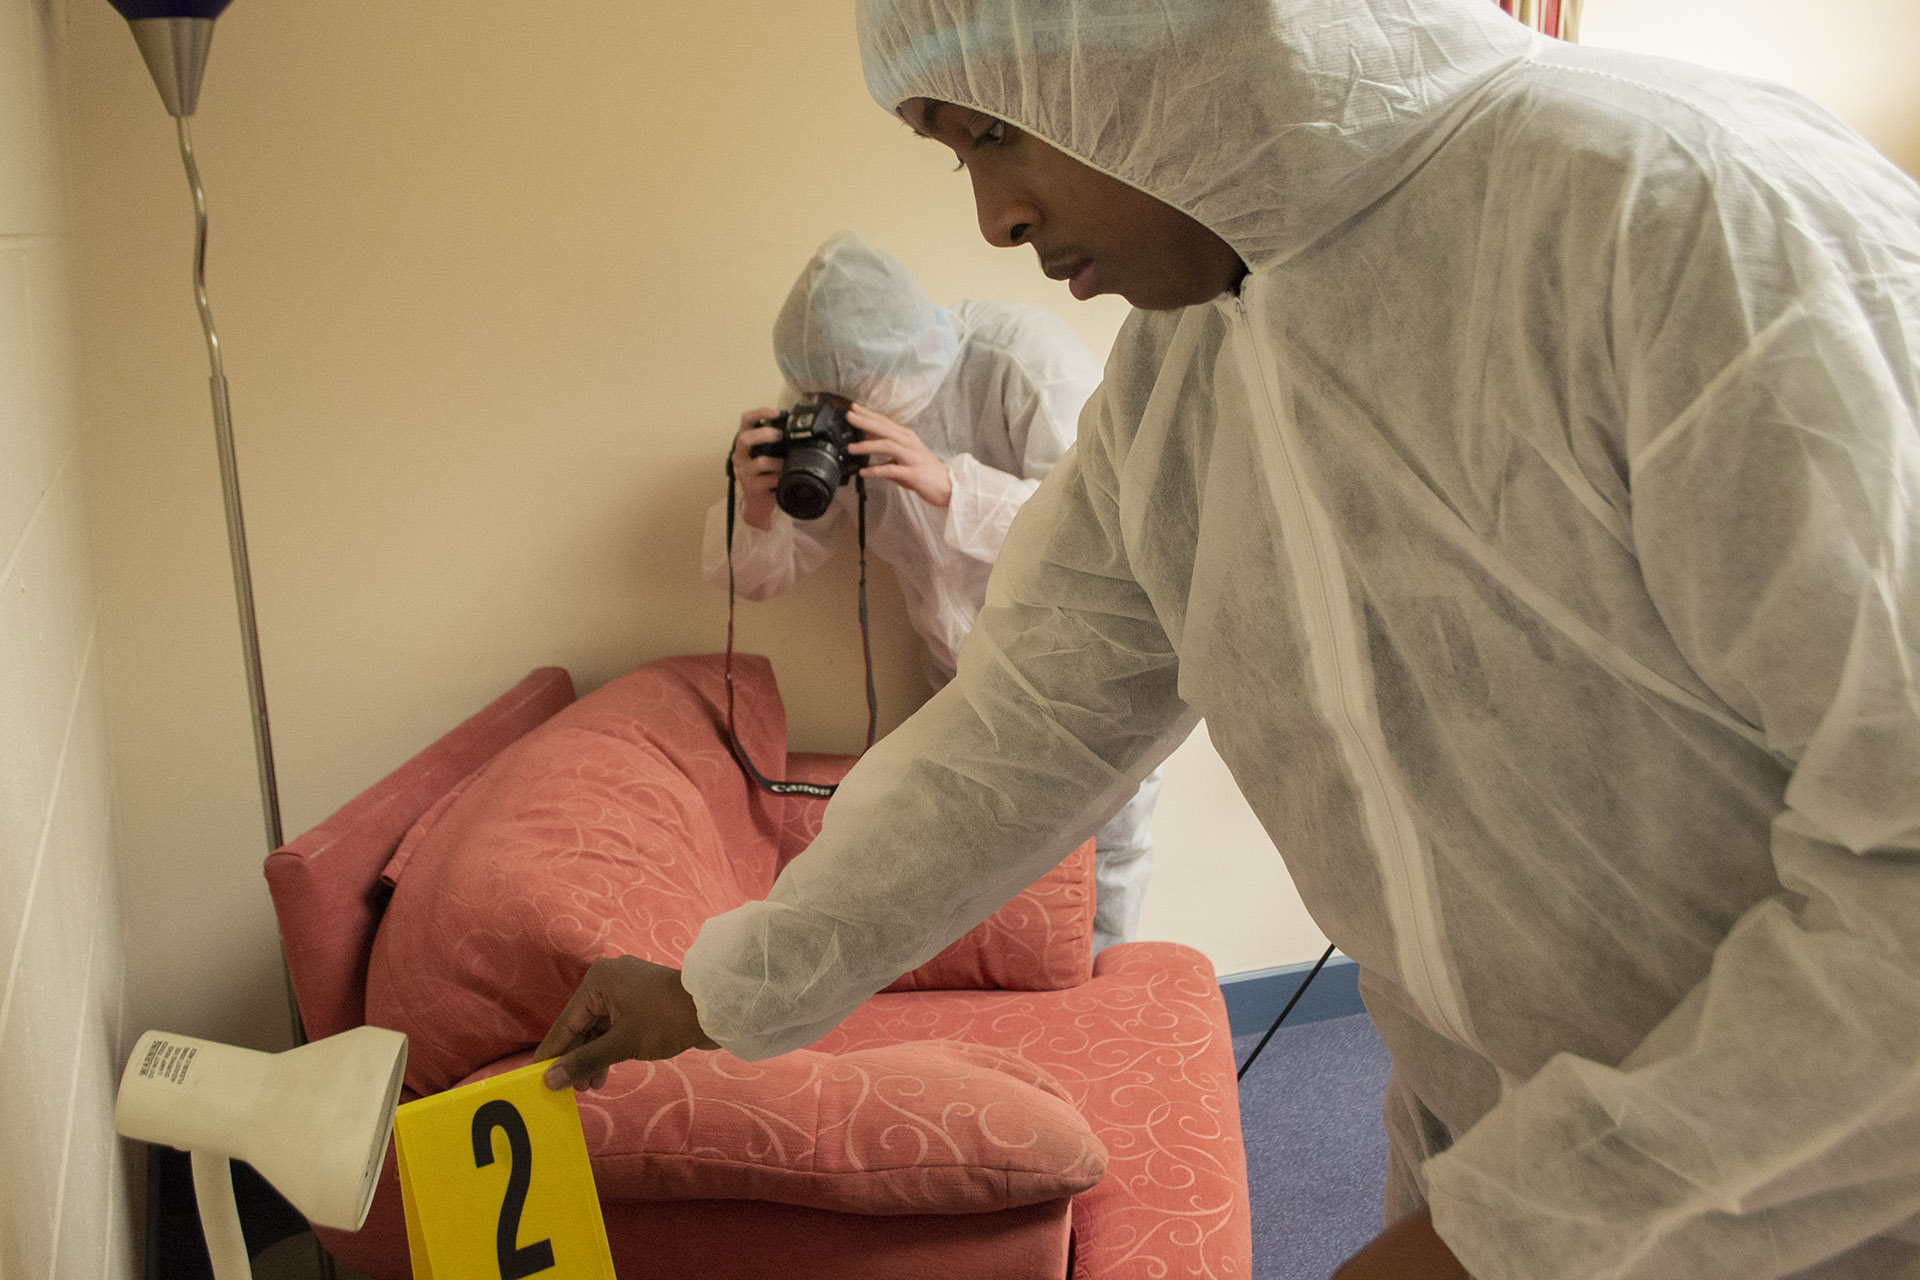 Forensics. Students in protective clothing reviewing crime scene